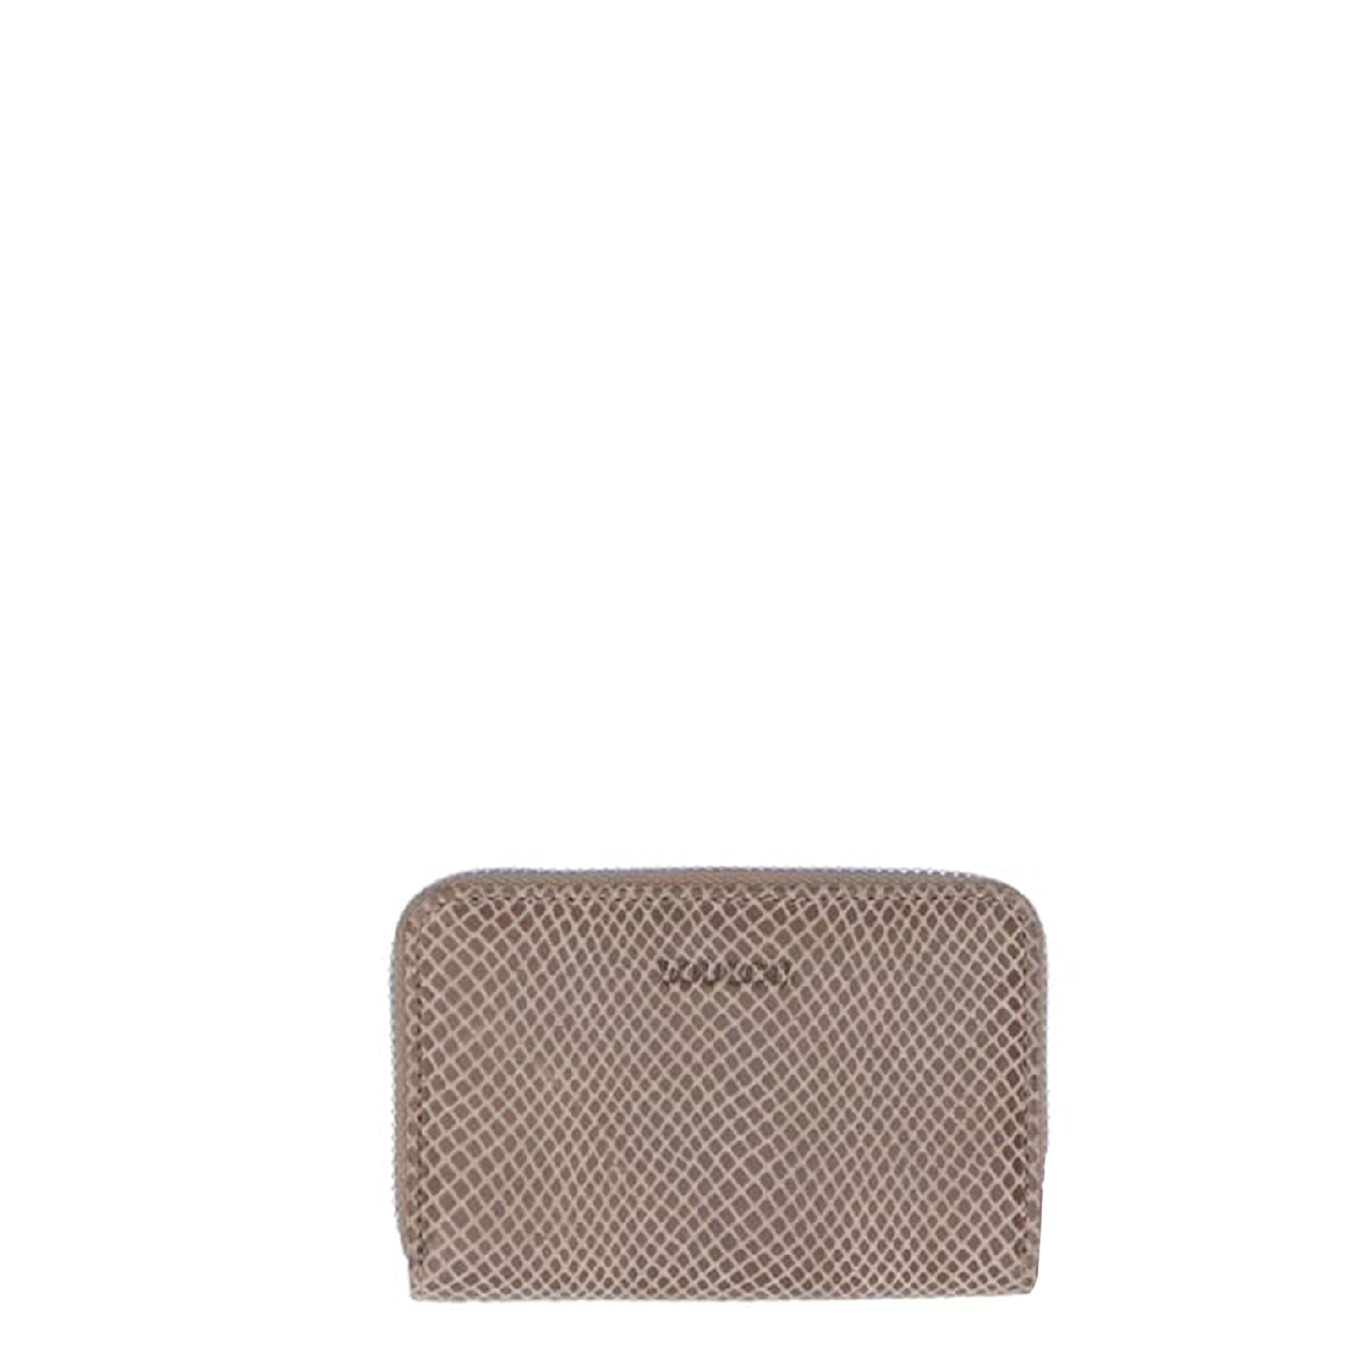 LouLou Essentials XS Queen taupe Dames portemonnee